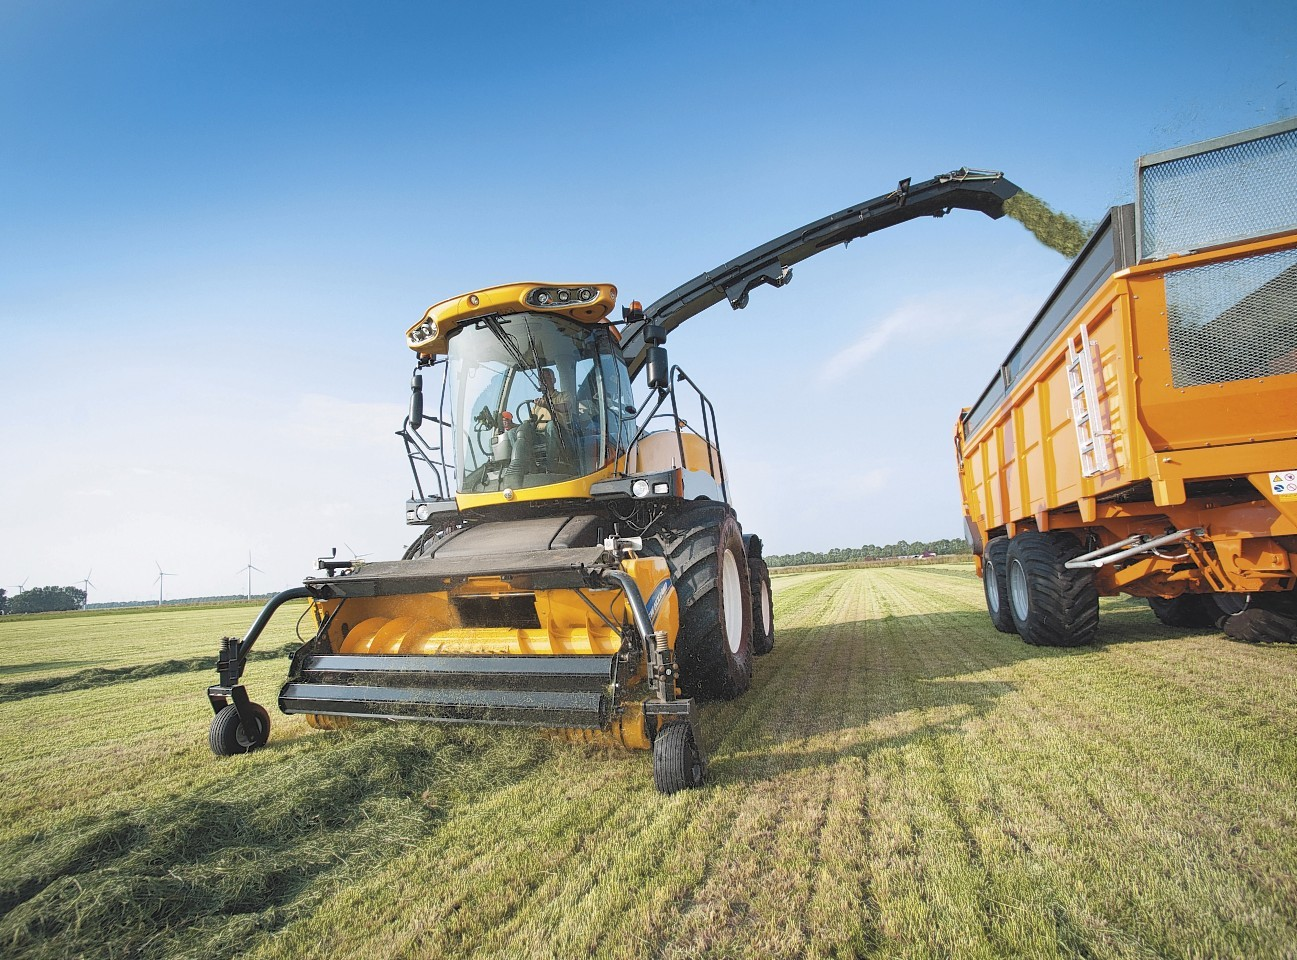 Precision technologies are not the answer to all of farming's problems, delegates were told.